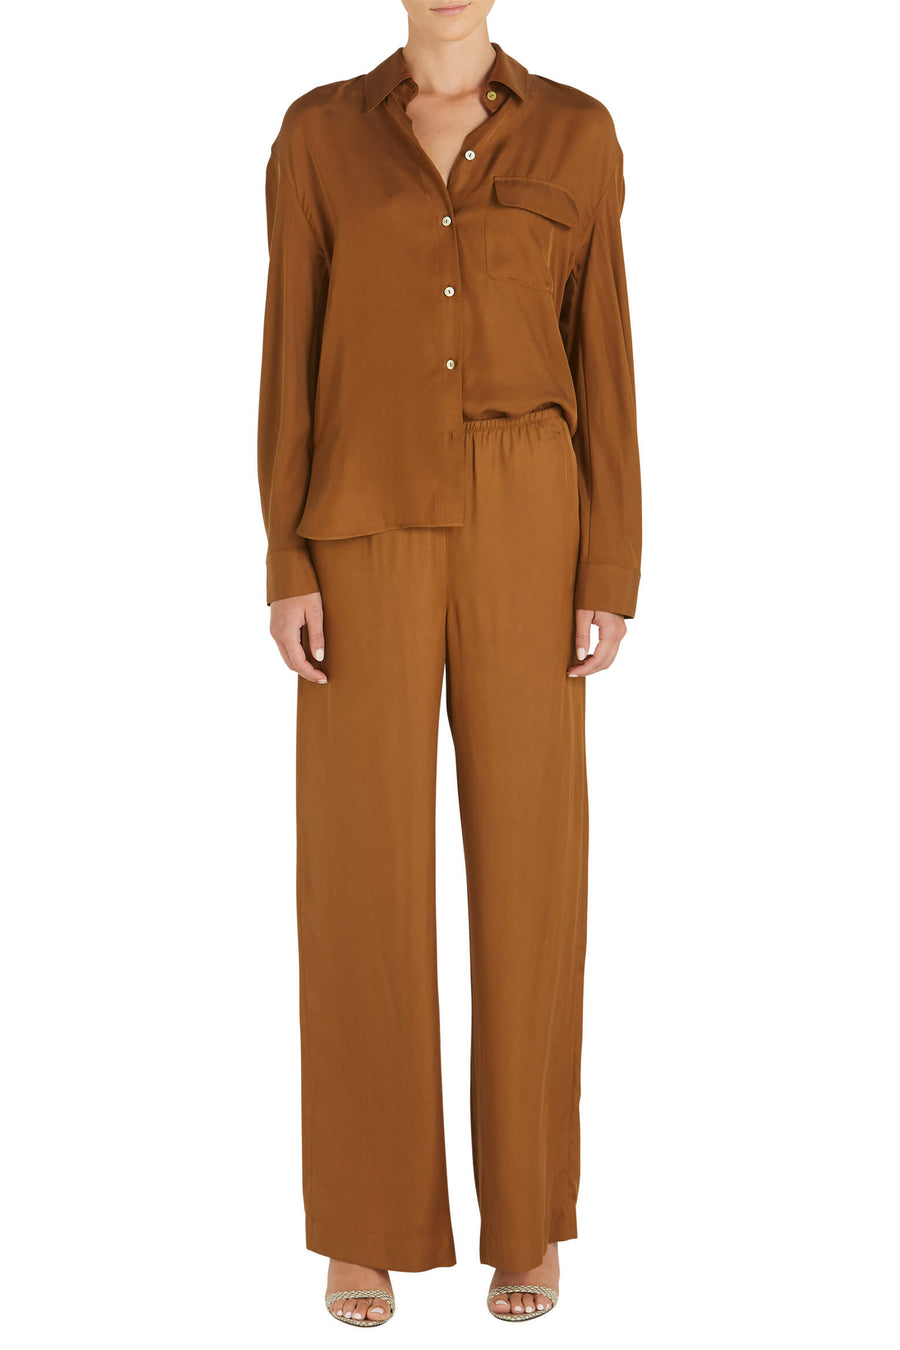 VINCE Easy Utility Button Down in Palo Santo from The New Trend